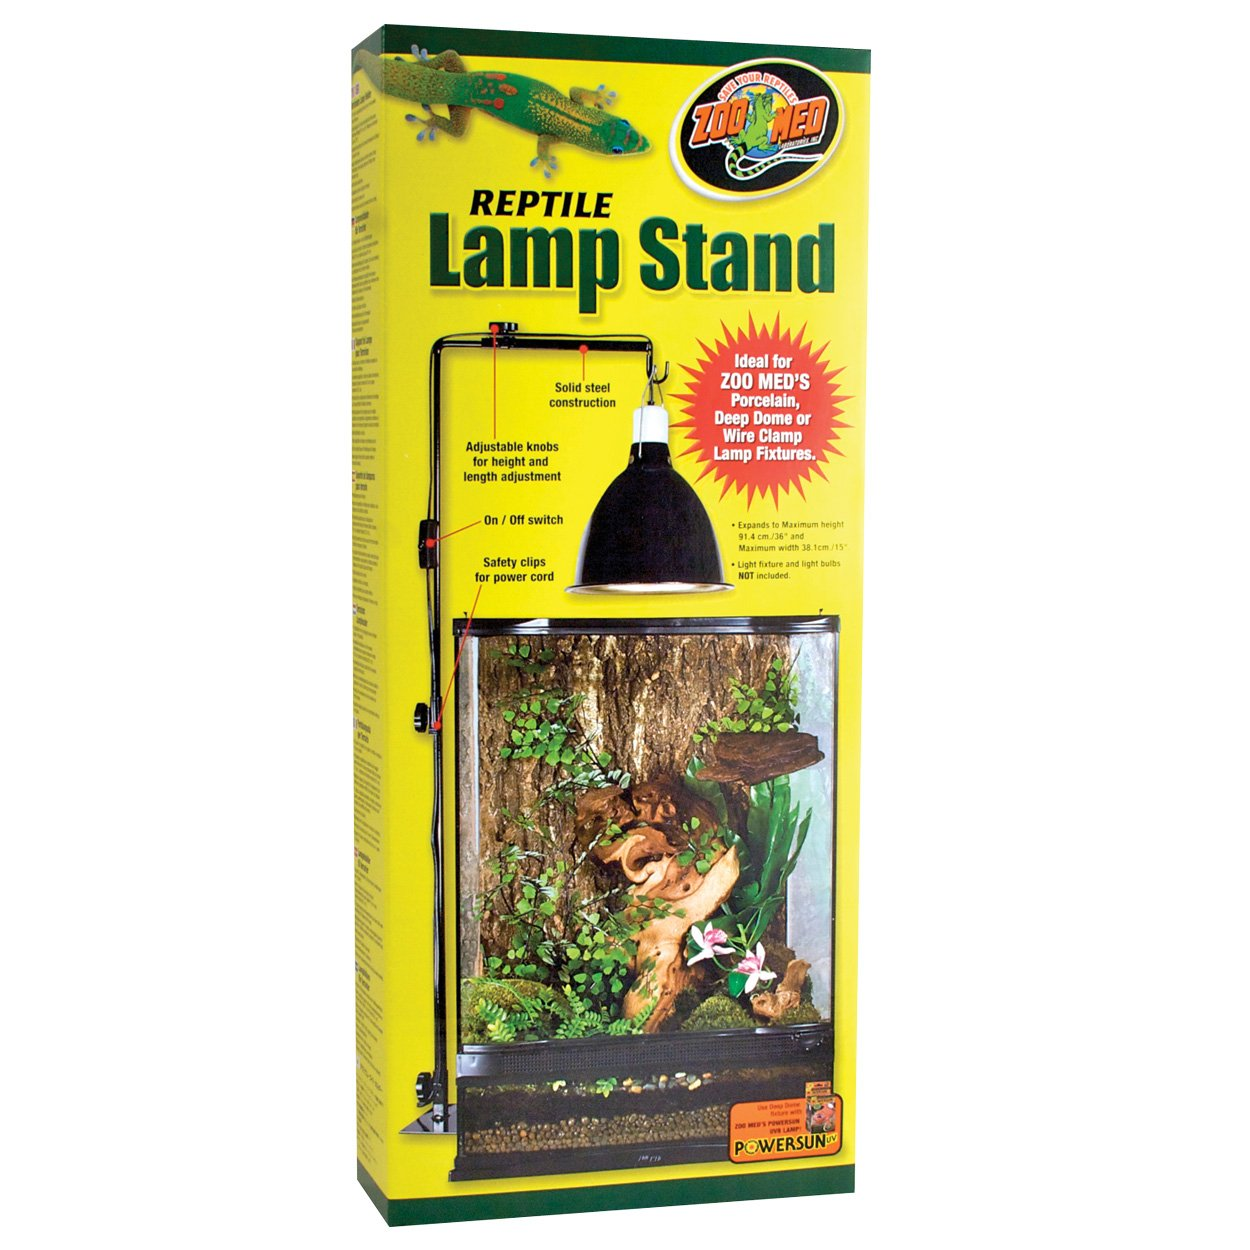 Zoo Med Reptile Lamp Stand, Full Size